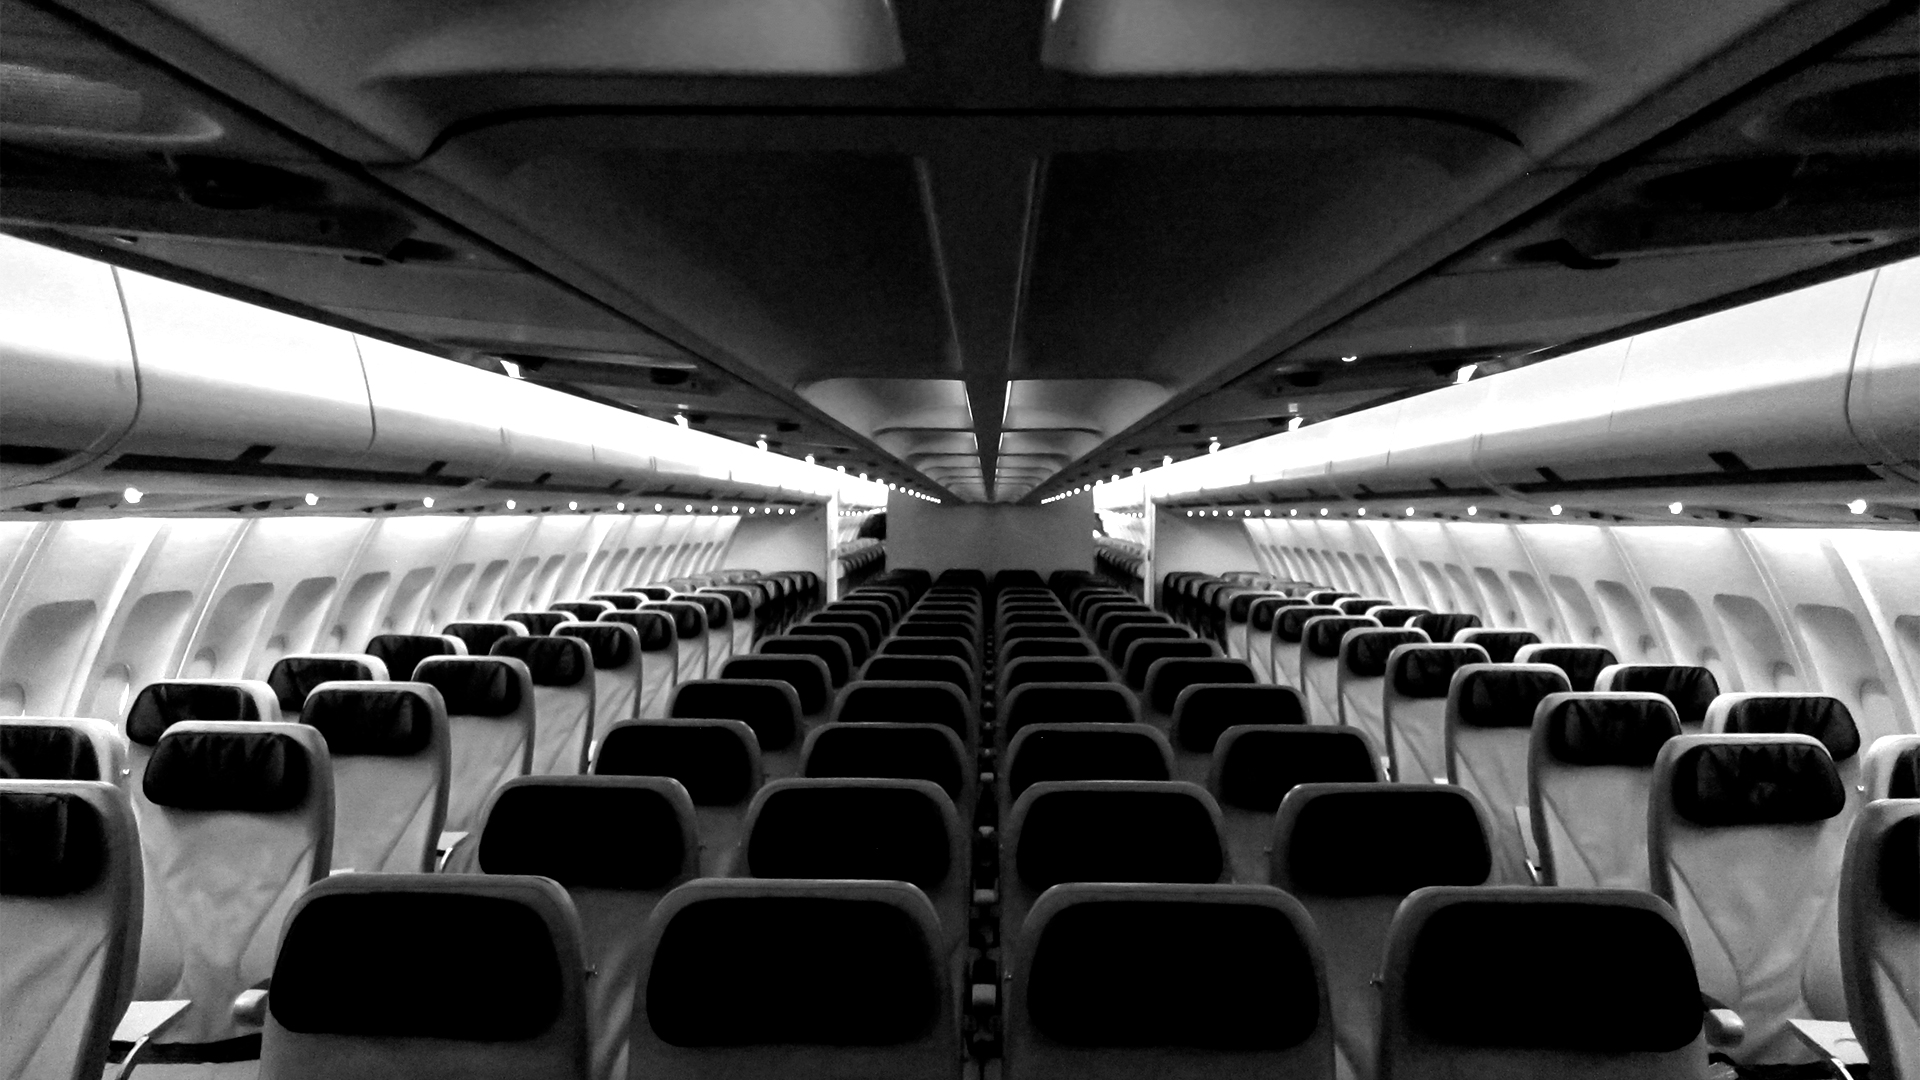 Tapestry lighting system used on an Azul A330